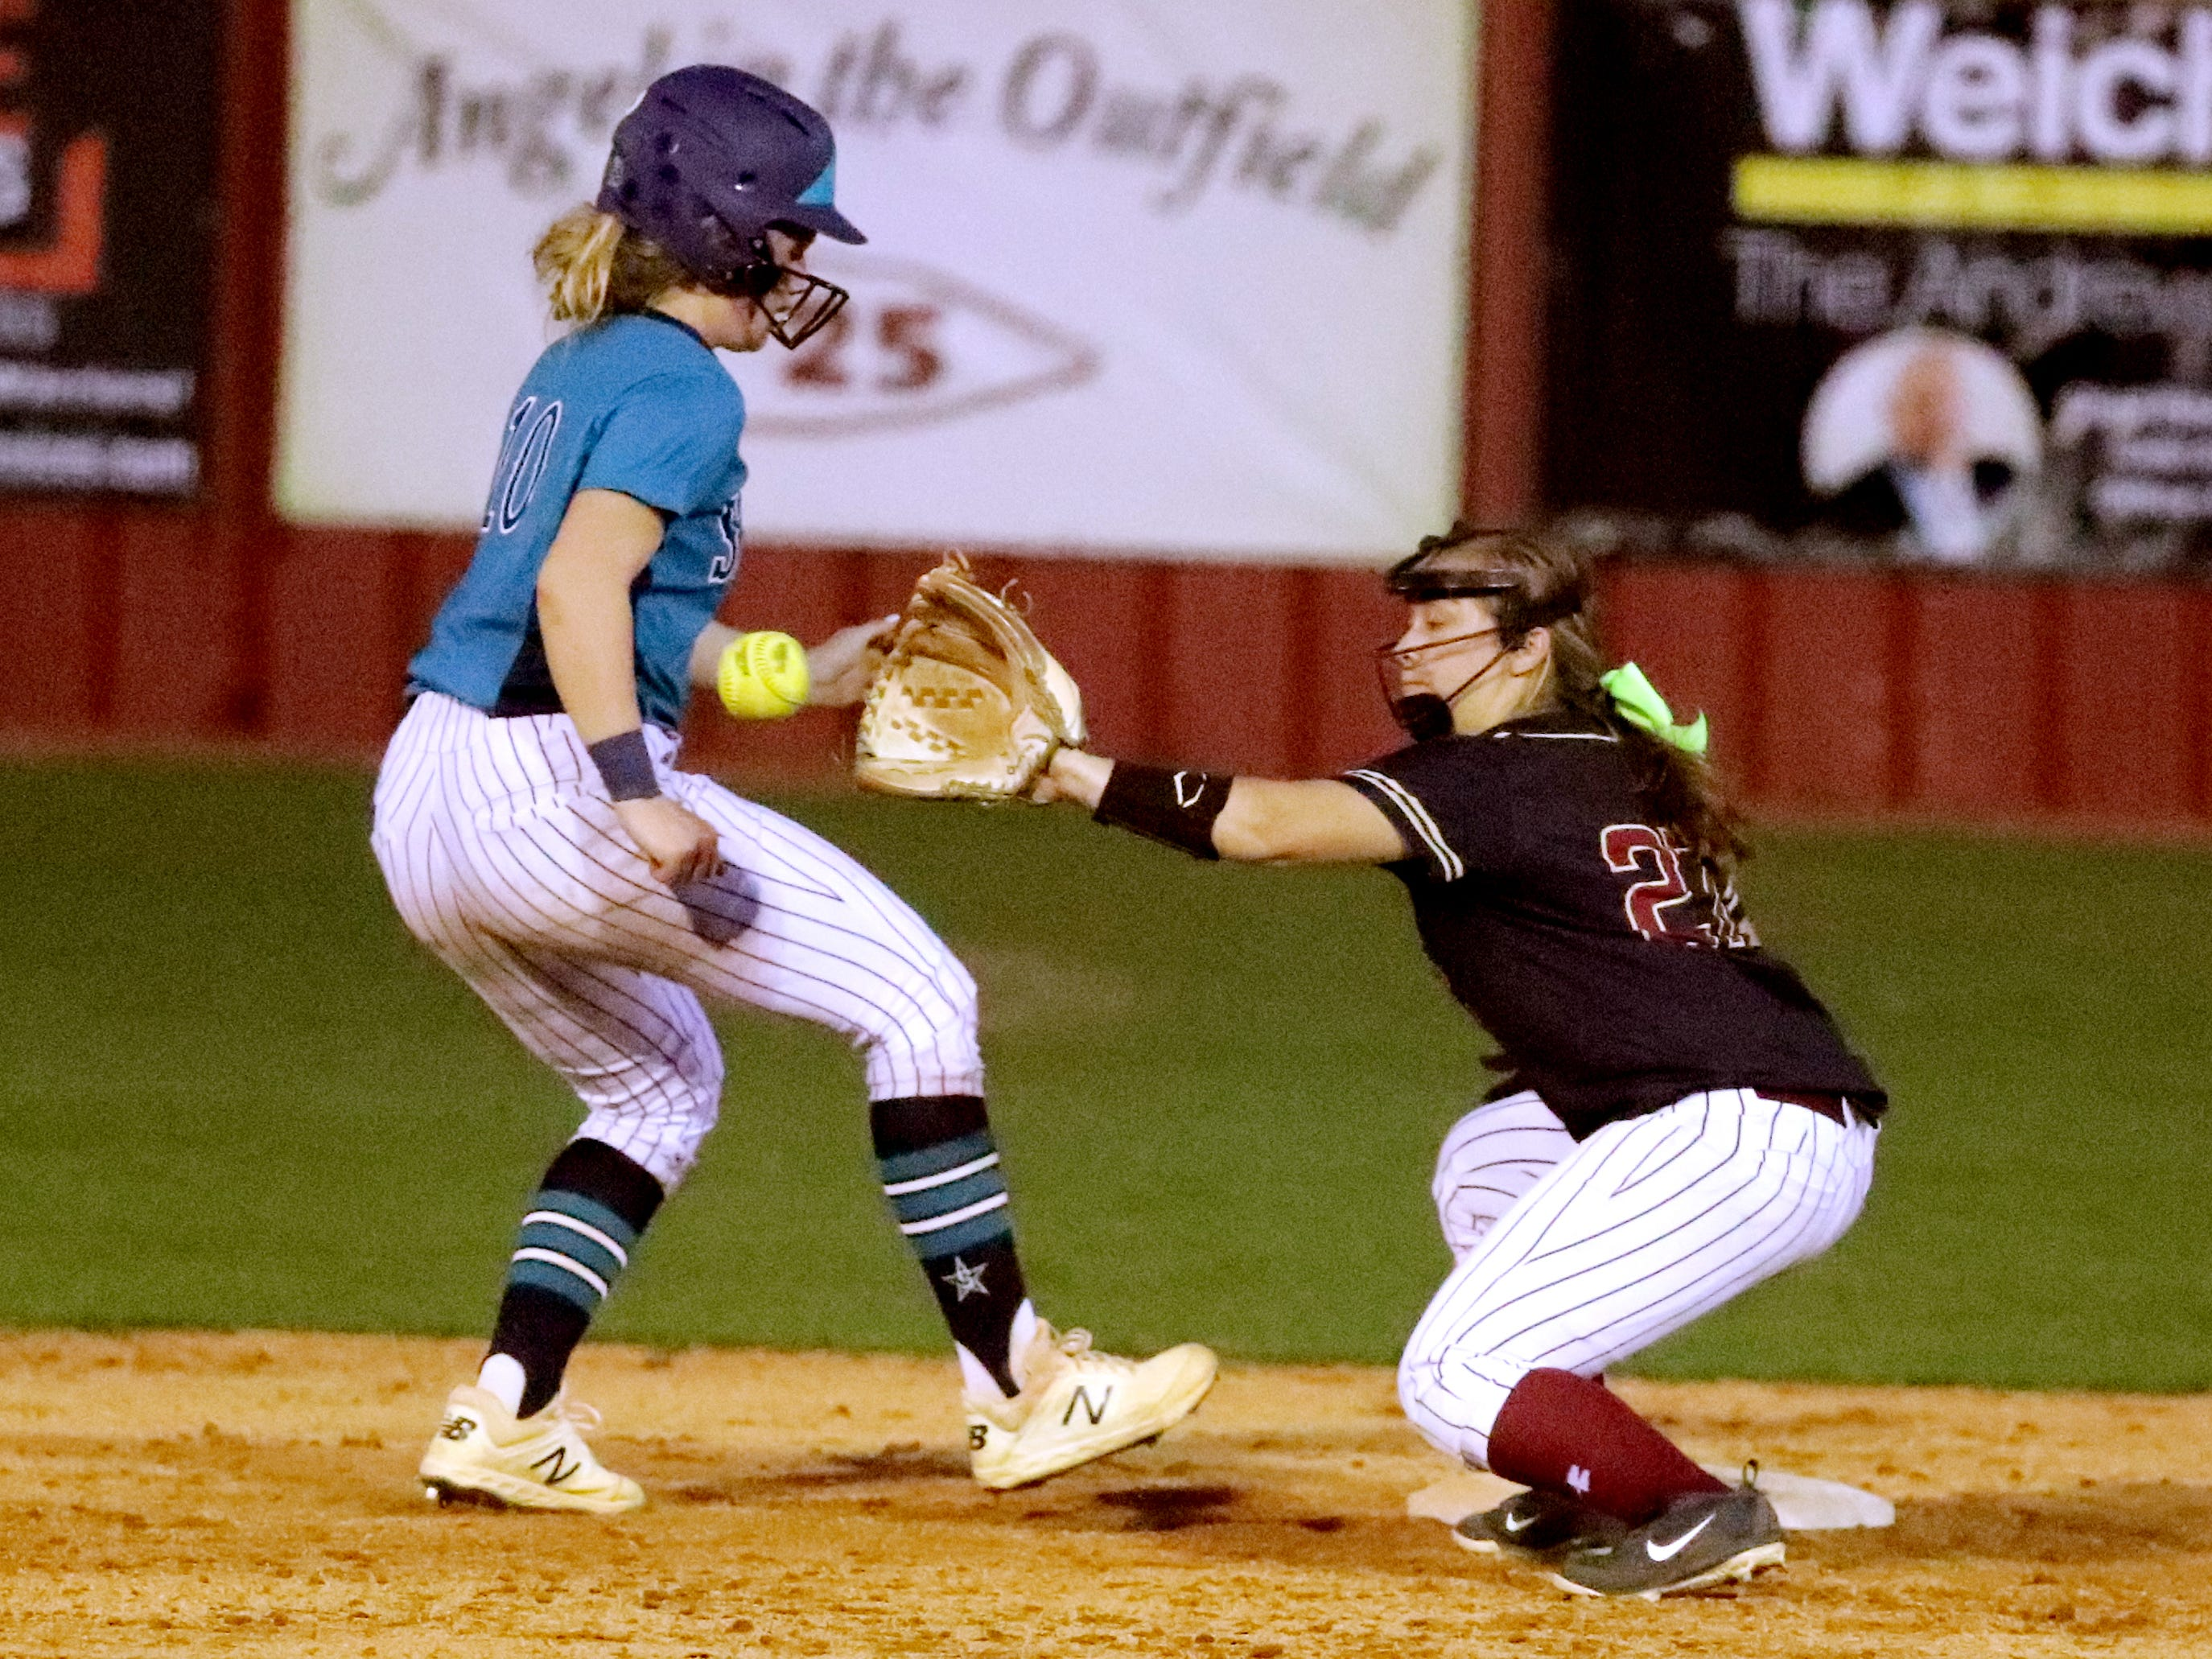 Riverdale's Brooklynn Ott (27) tries to out Siegel's Caitlyn McCrary (10) on second base on Thursday April 11, 2019, at Riverdale.